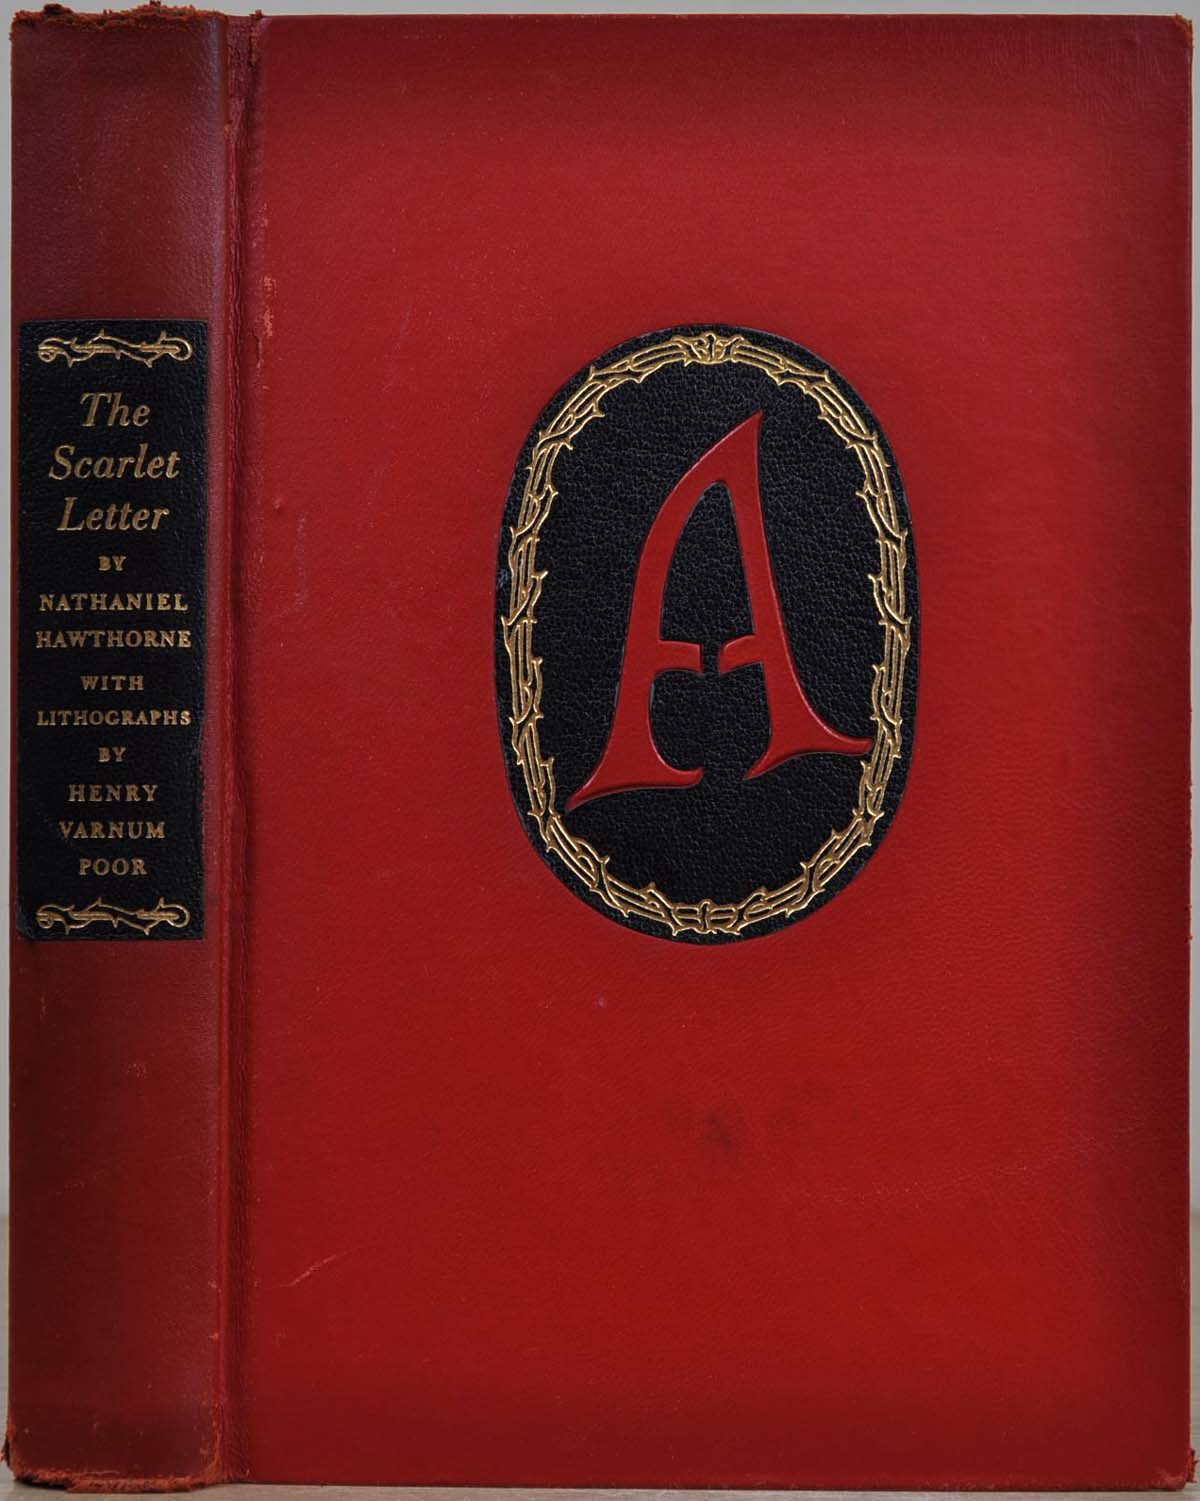 The Scarlet Letter Book Cover.The Scarlet Letter Limited Edition Signed By Henry Varnum Poor By Nathaniel Hawthorne Henry Varnum Poor On Kurt Gippert Bookseller